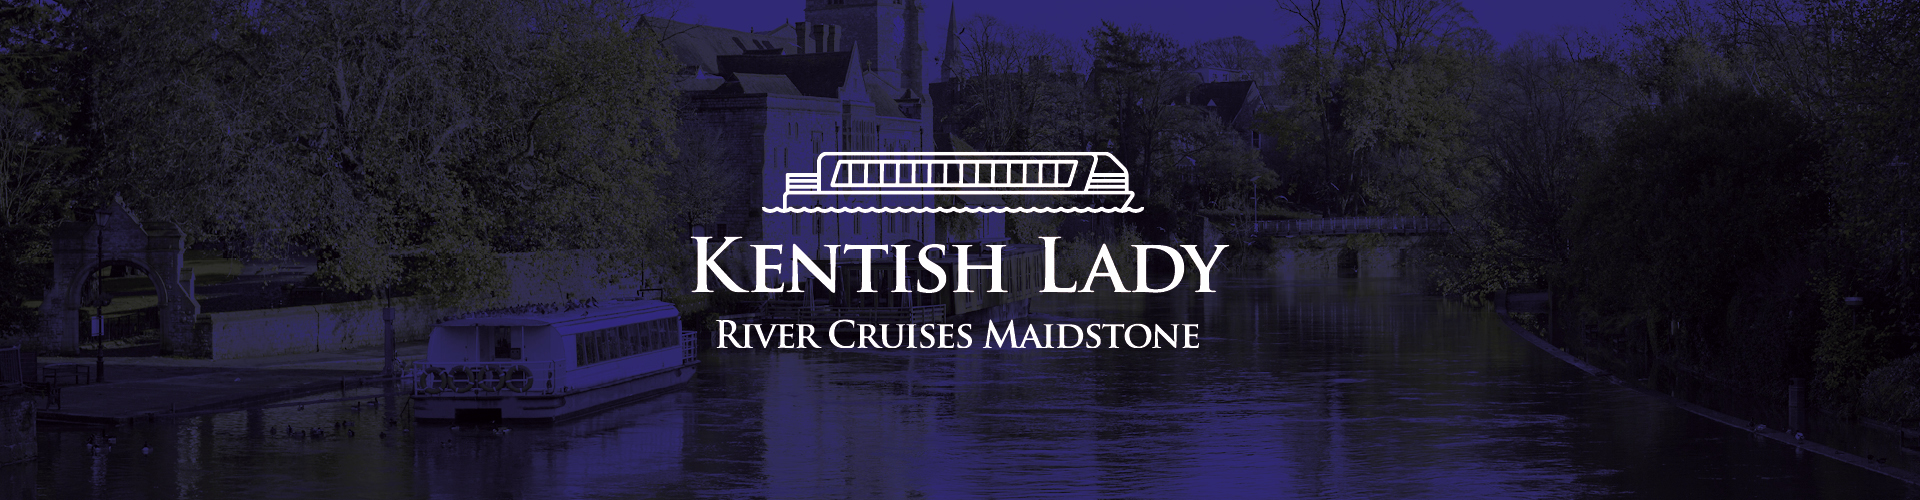 Popi Logo design for Kentish Lady River Cruises